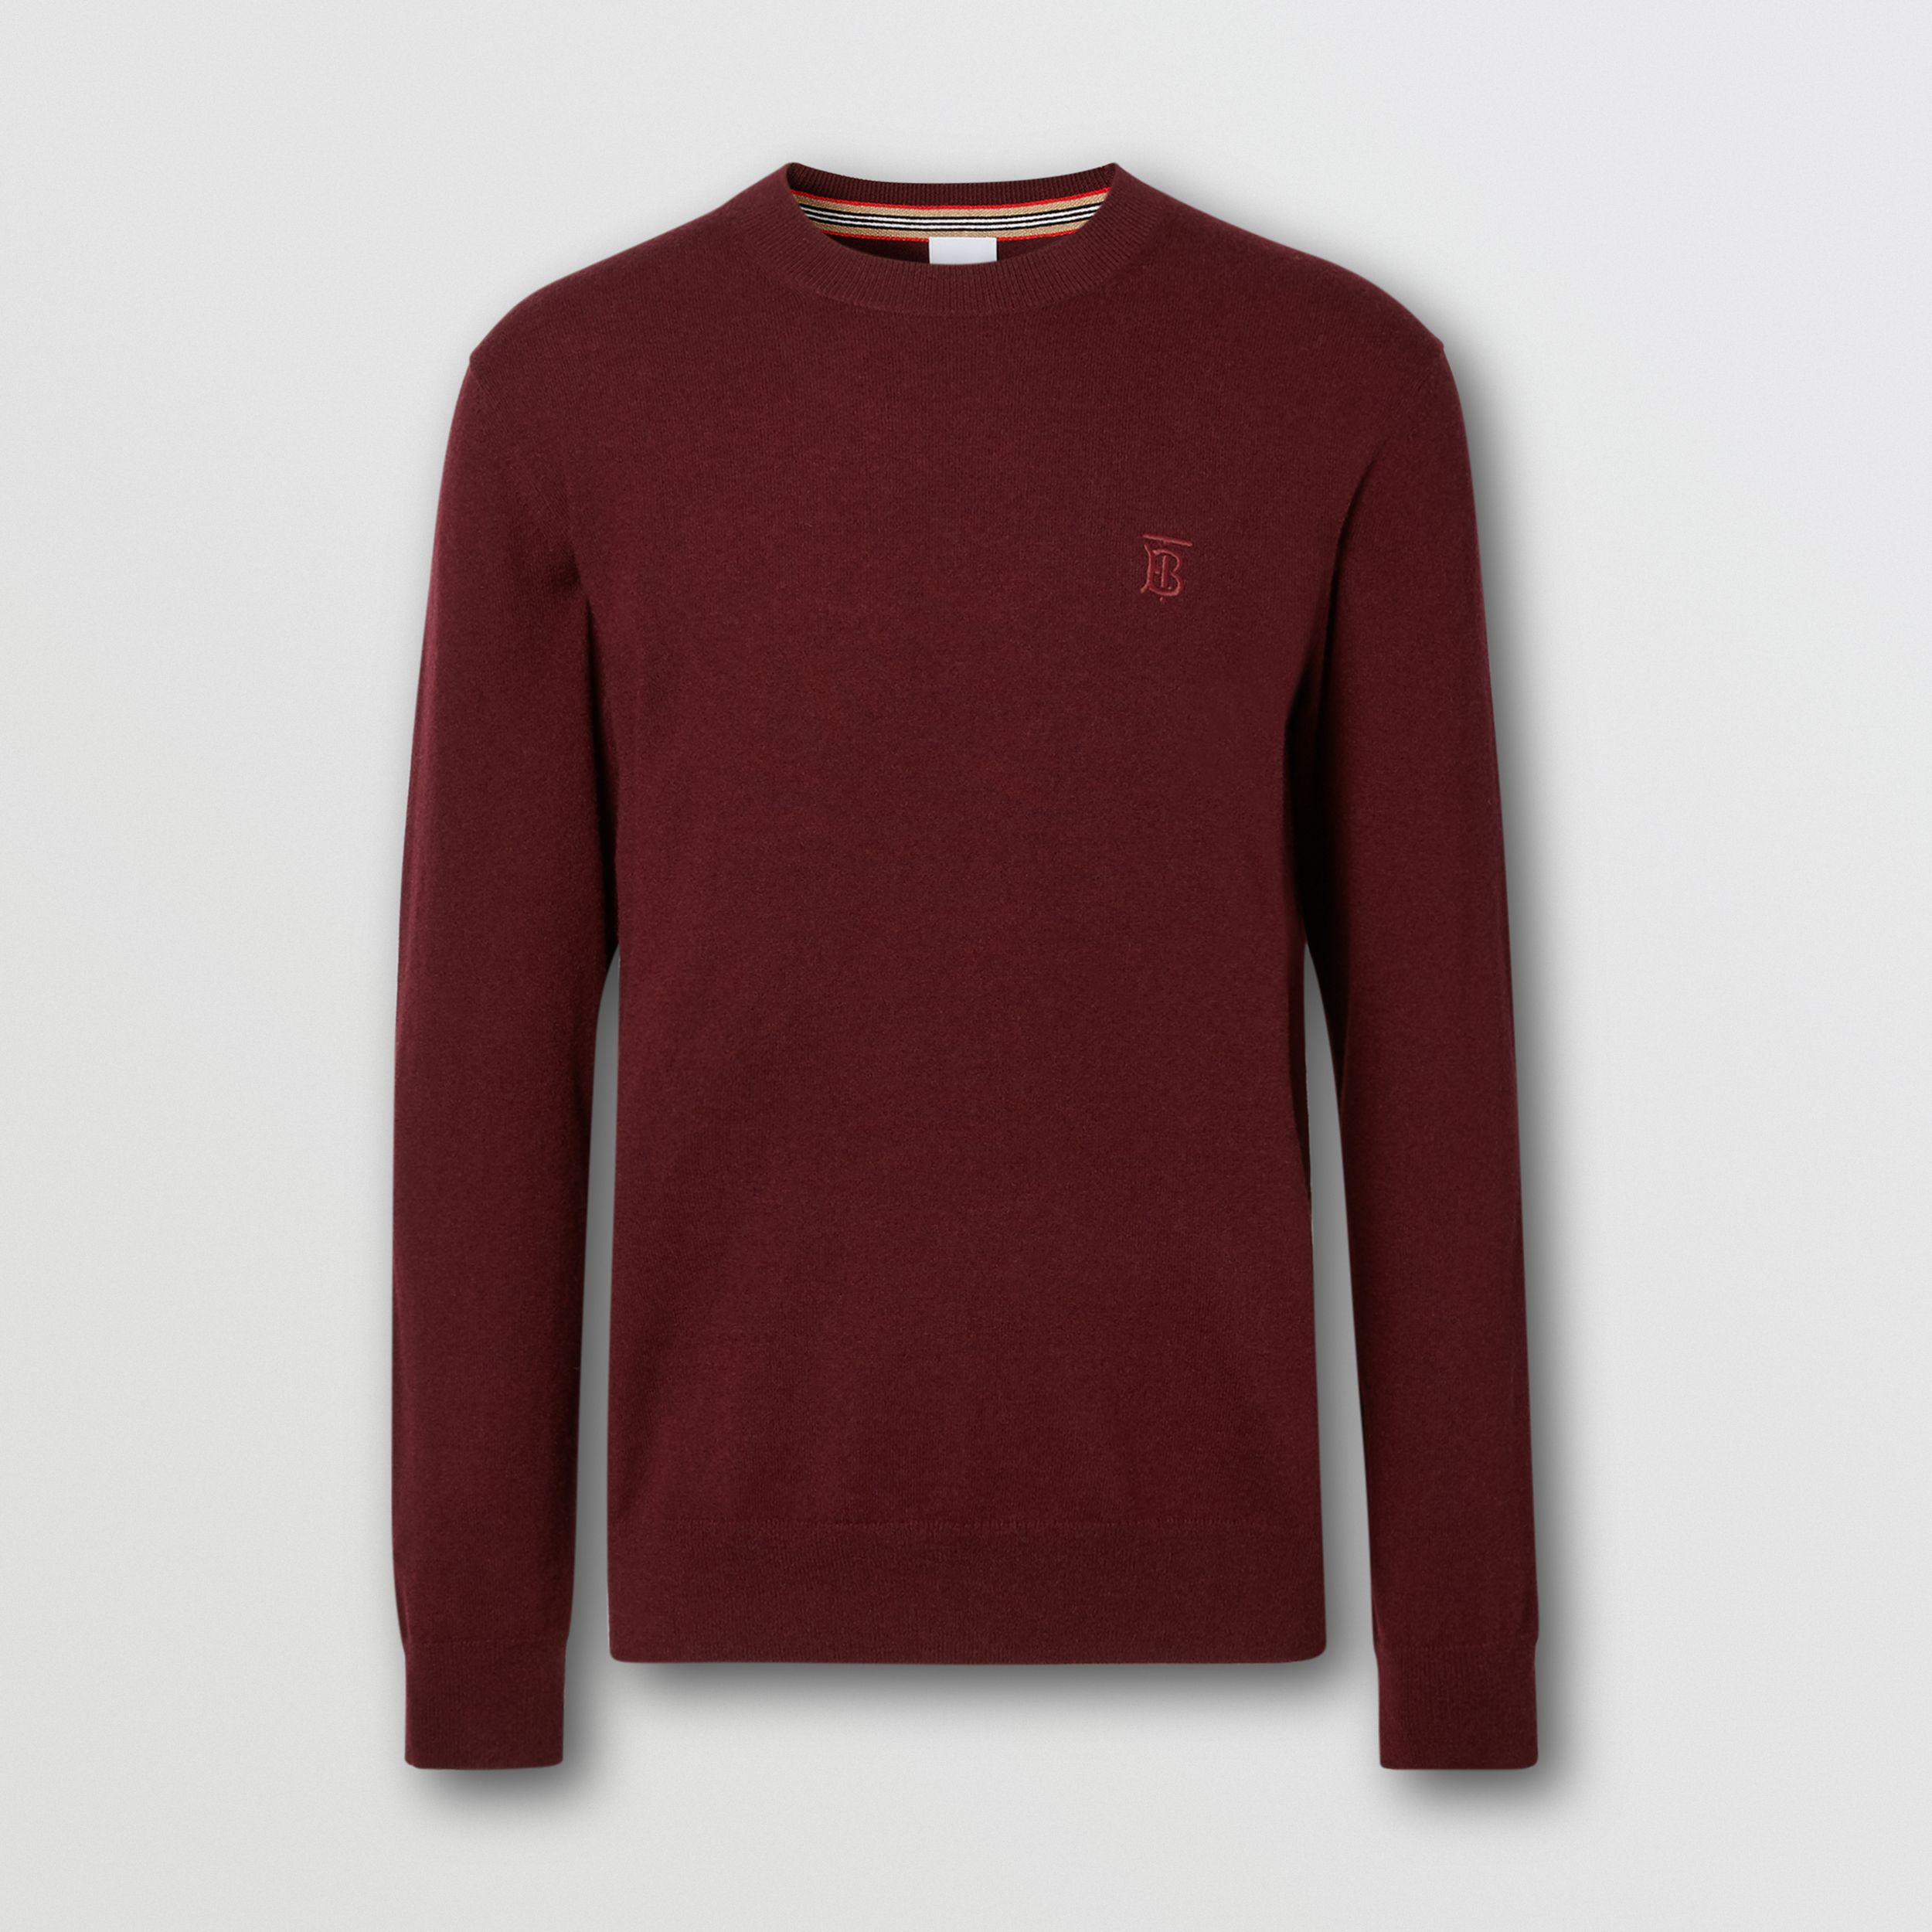 Monogram Motif Cashmere Sweater in Deep Merlot - Men | Burberry - 4